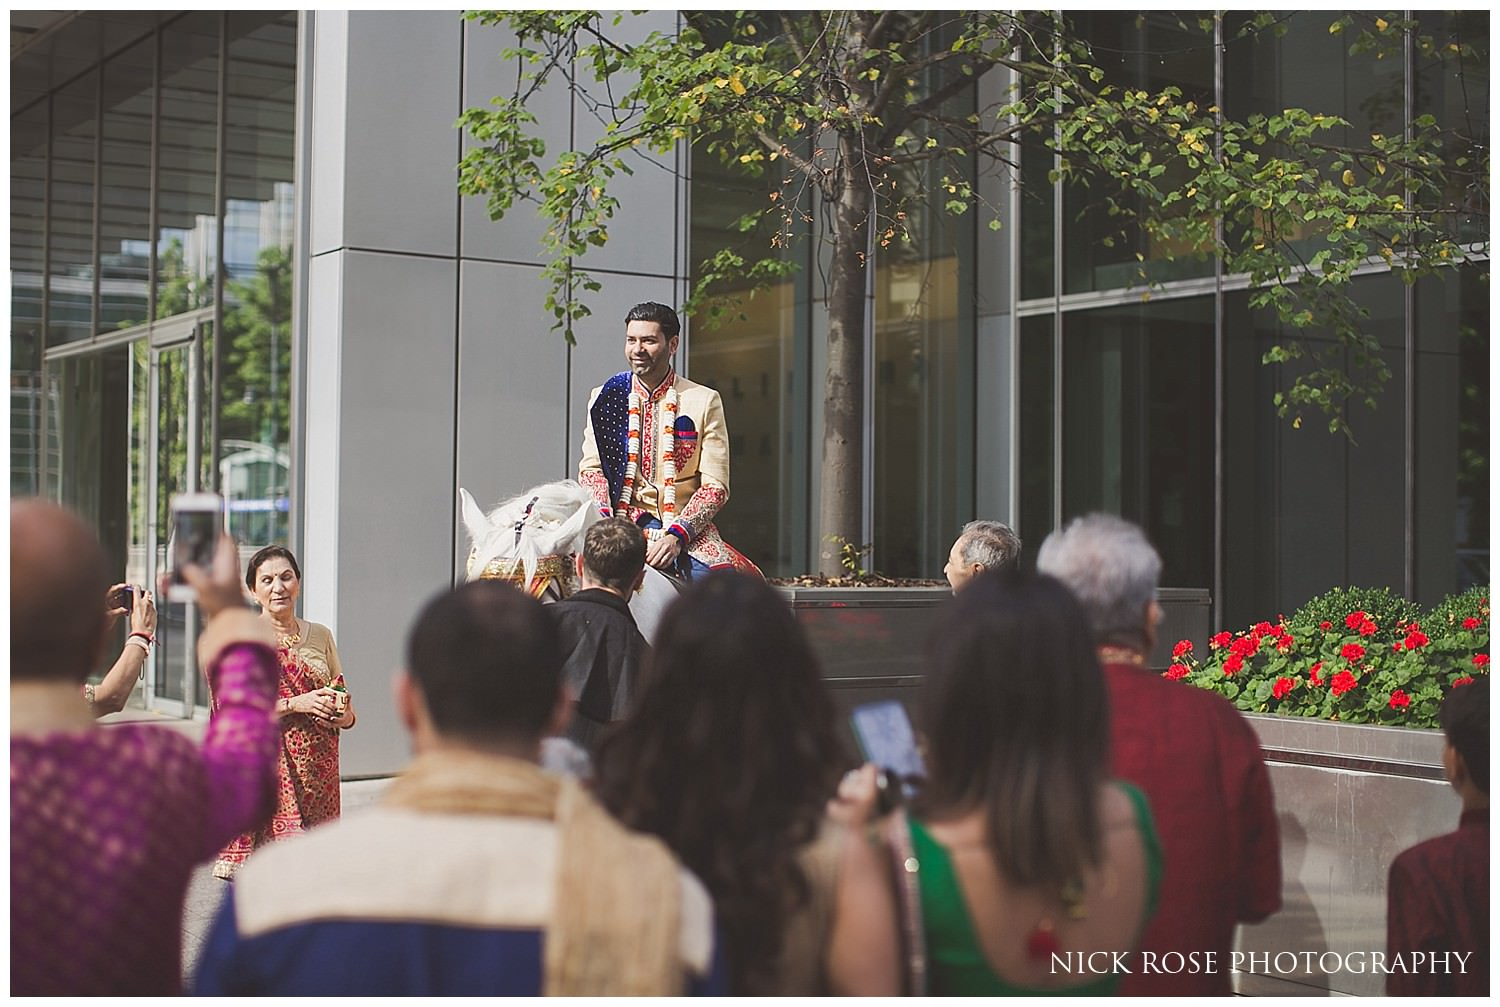 Groom on a horse getting ready for his Hindu wedding Baraat in London